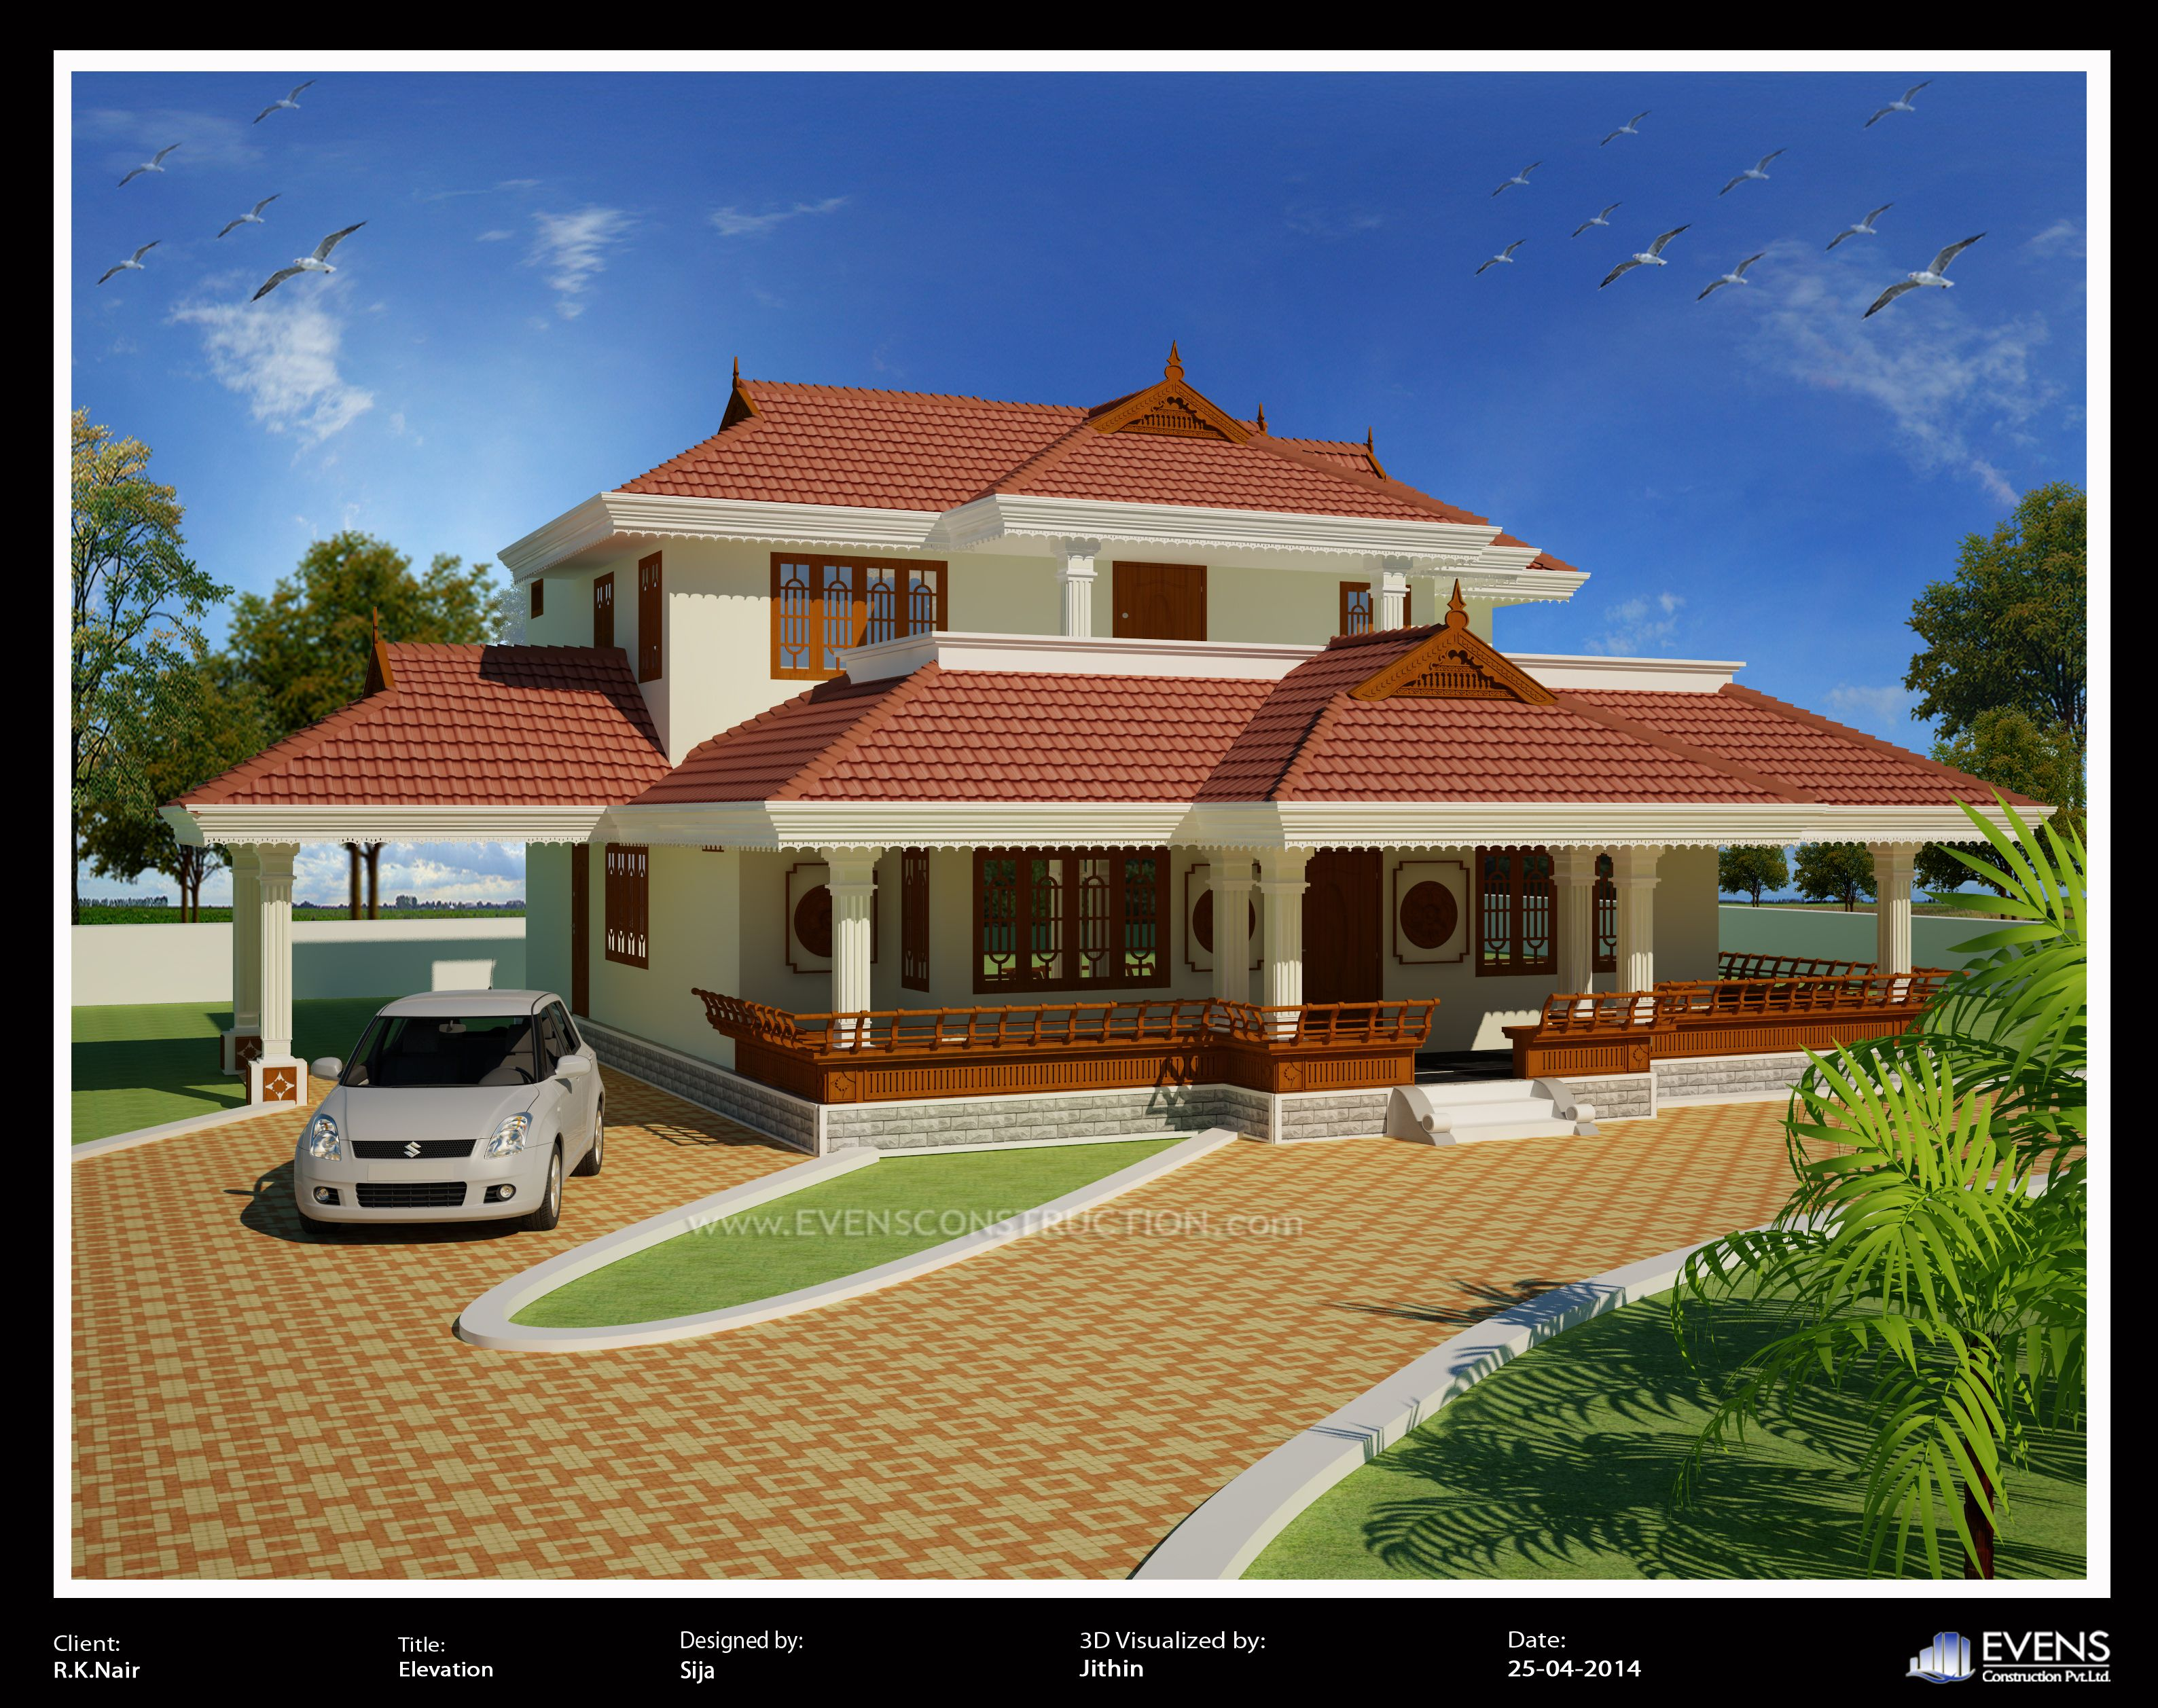 Pin by evens construction on Ideas for the house   Village ...